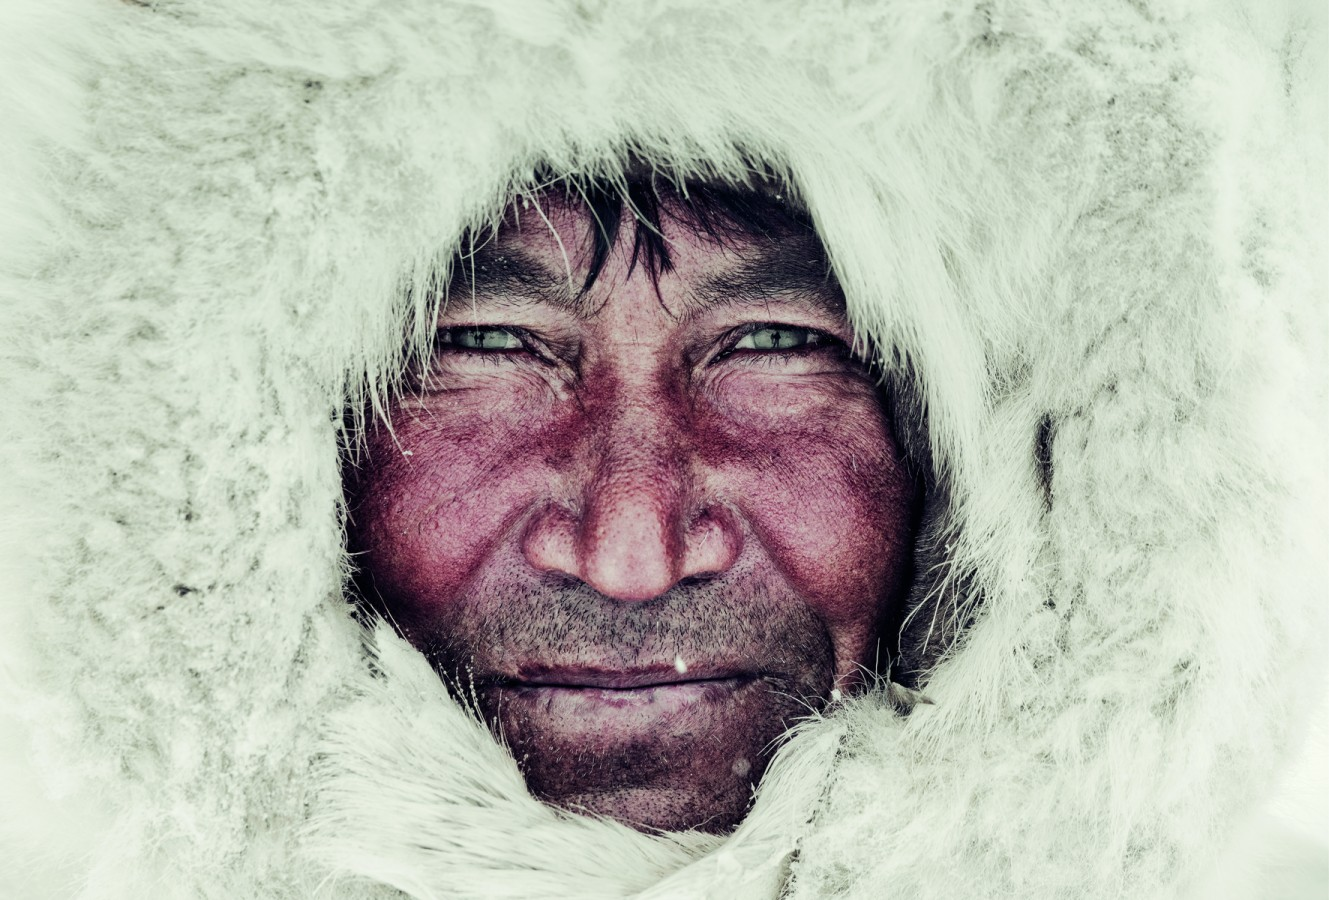 Stunning Photographs Of The World's Last Indigenous Tribes - YAKIM, BRIGADE